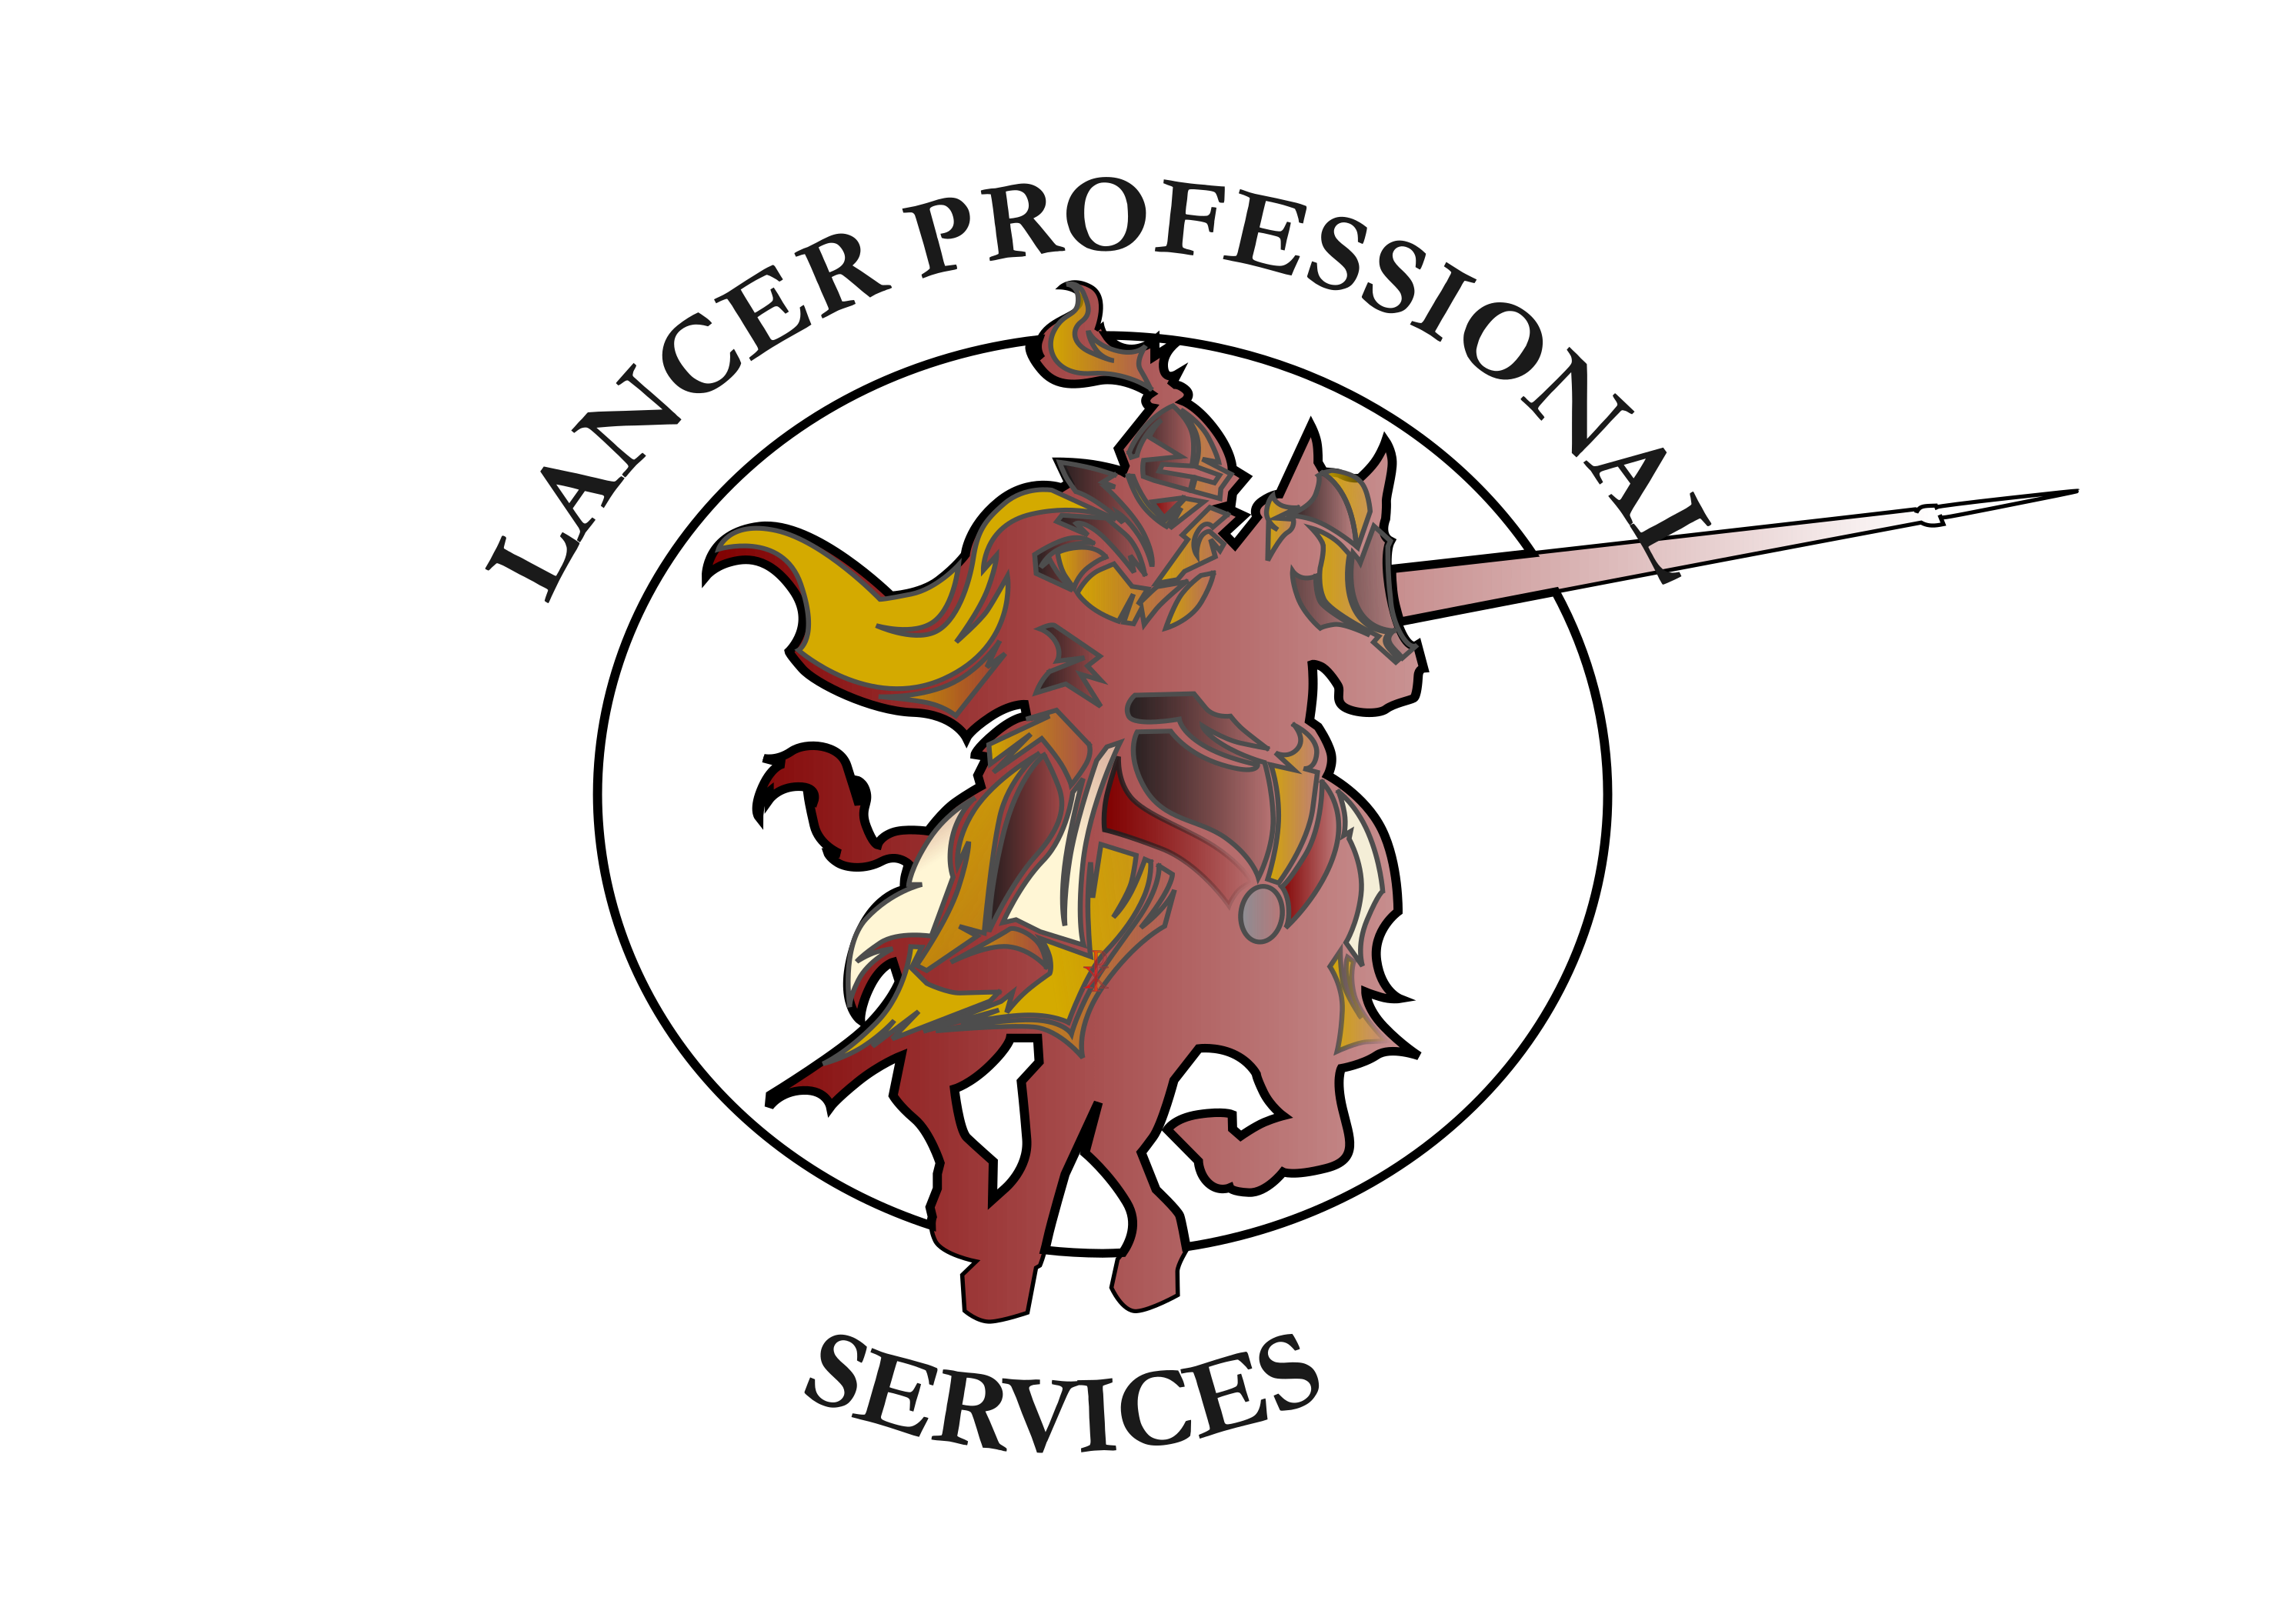 Professional clipart professional service. Lancer services the official